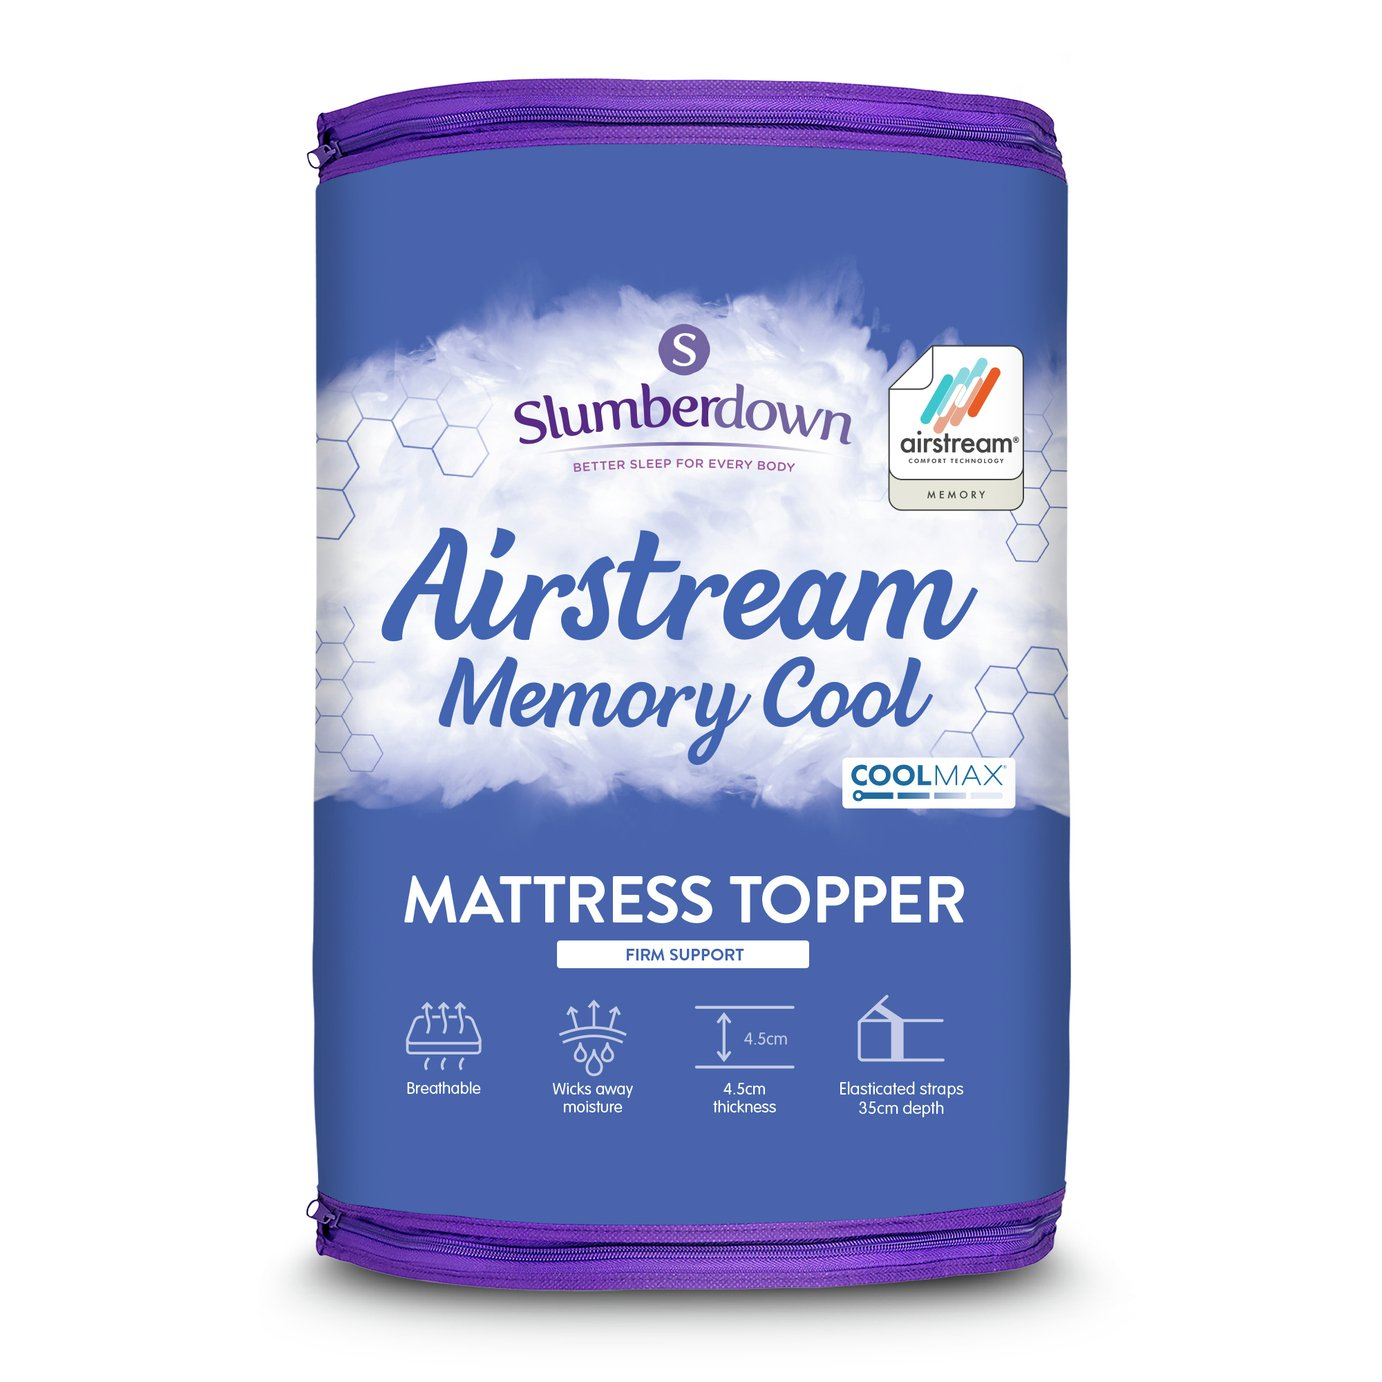 Slumberdown Airstream Memory Fibre Mattress Topper - Single